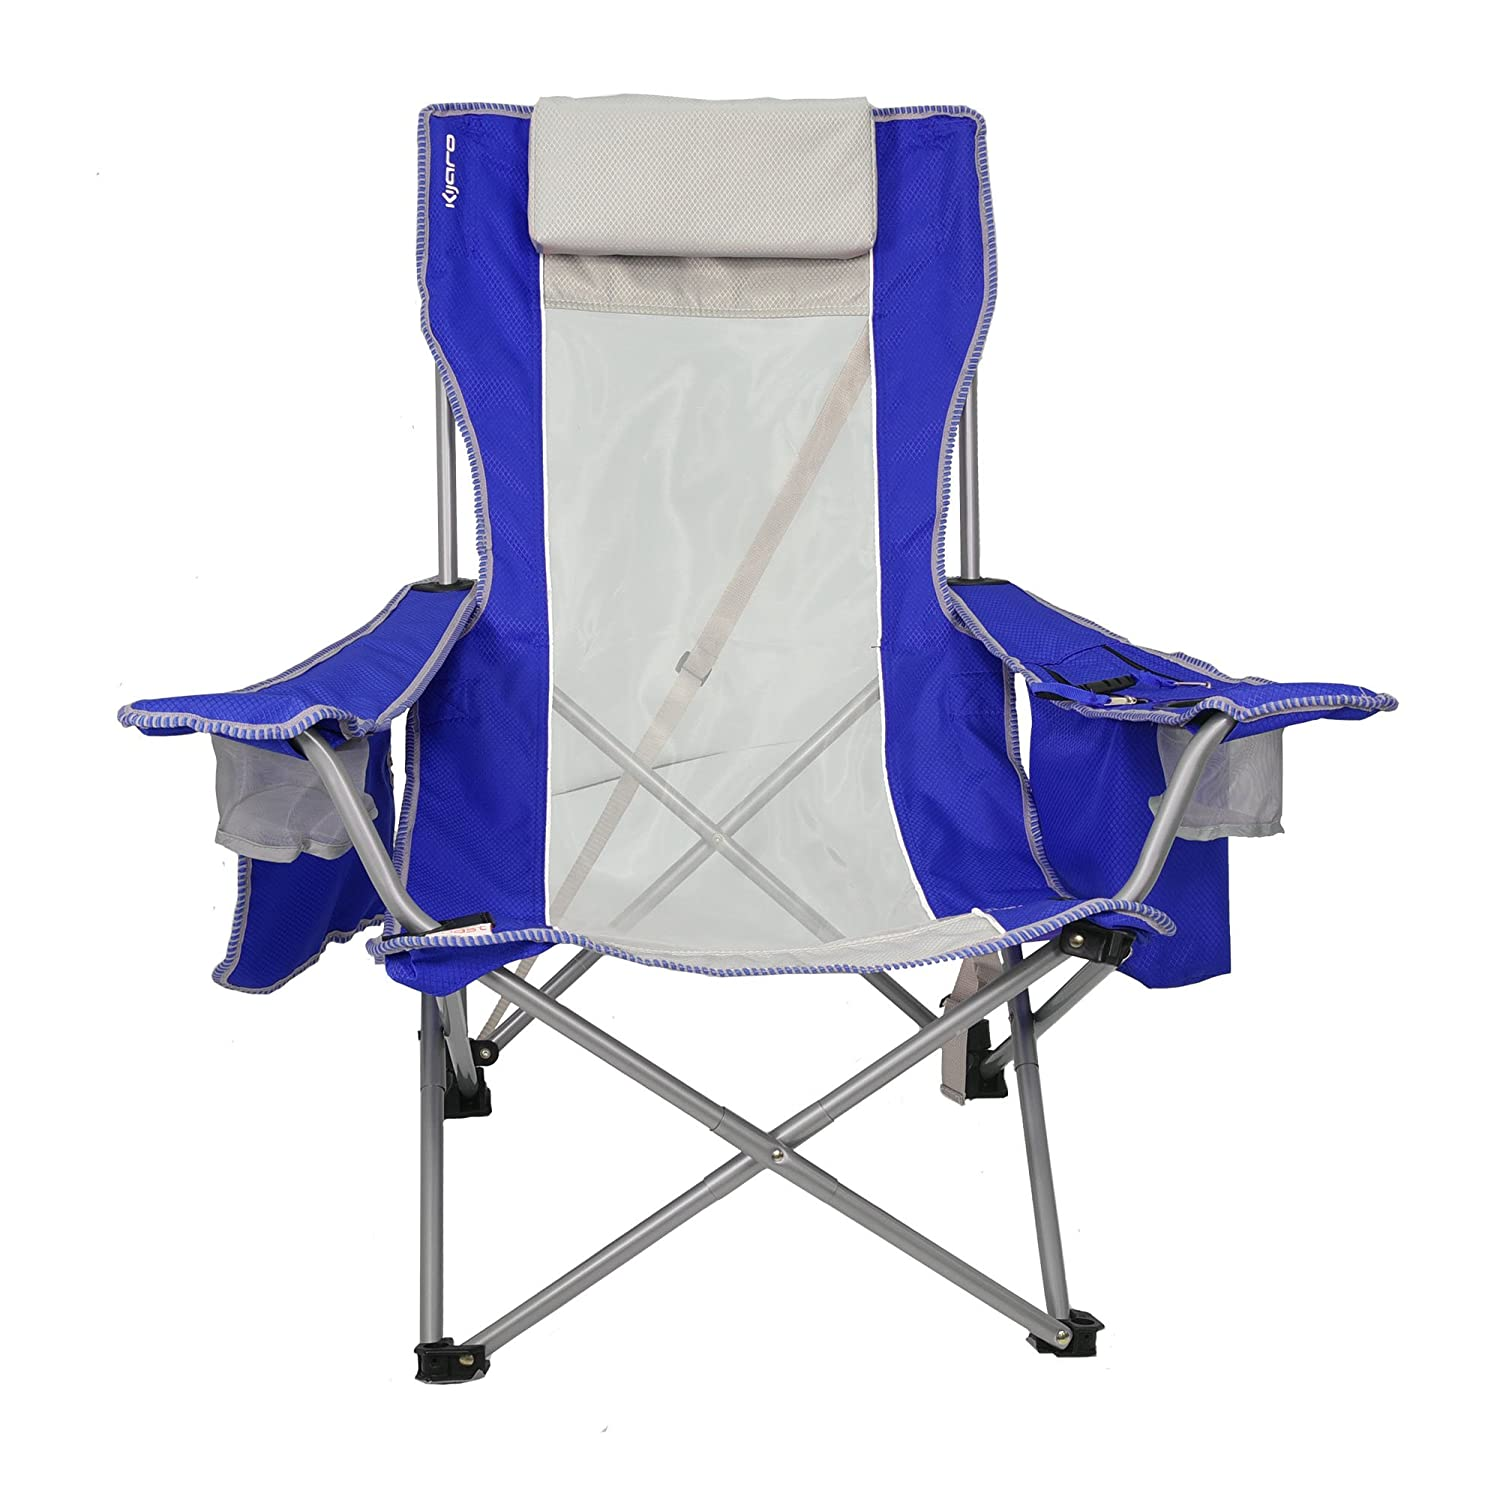 Outstanding Details About Kijaro Coast Folding Beach Sling Chair With Cooler Maldives Blue Gmtry Best Dining Table And Chair Ideas Images Gmtryco